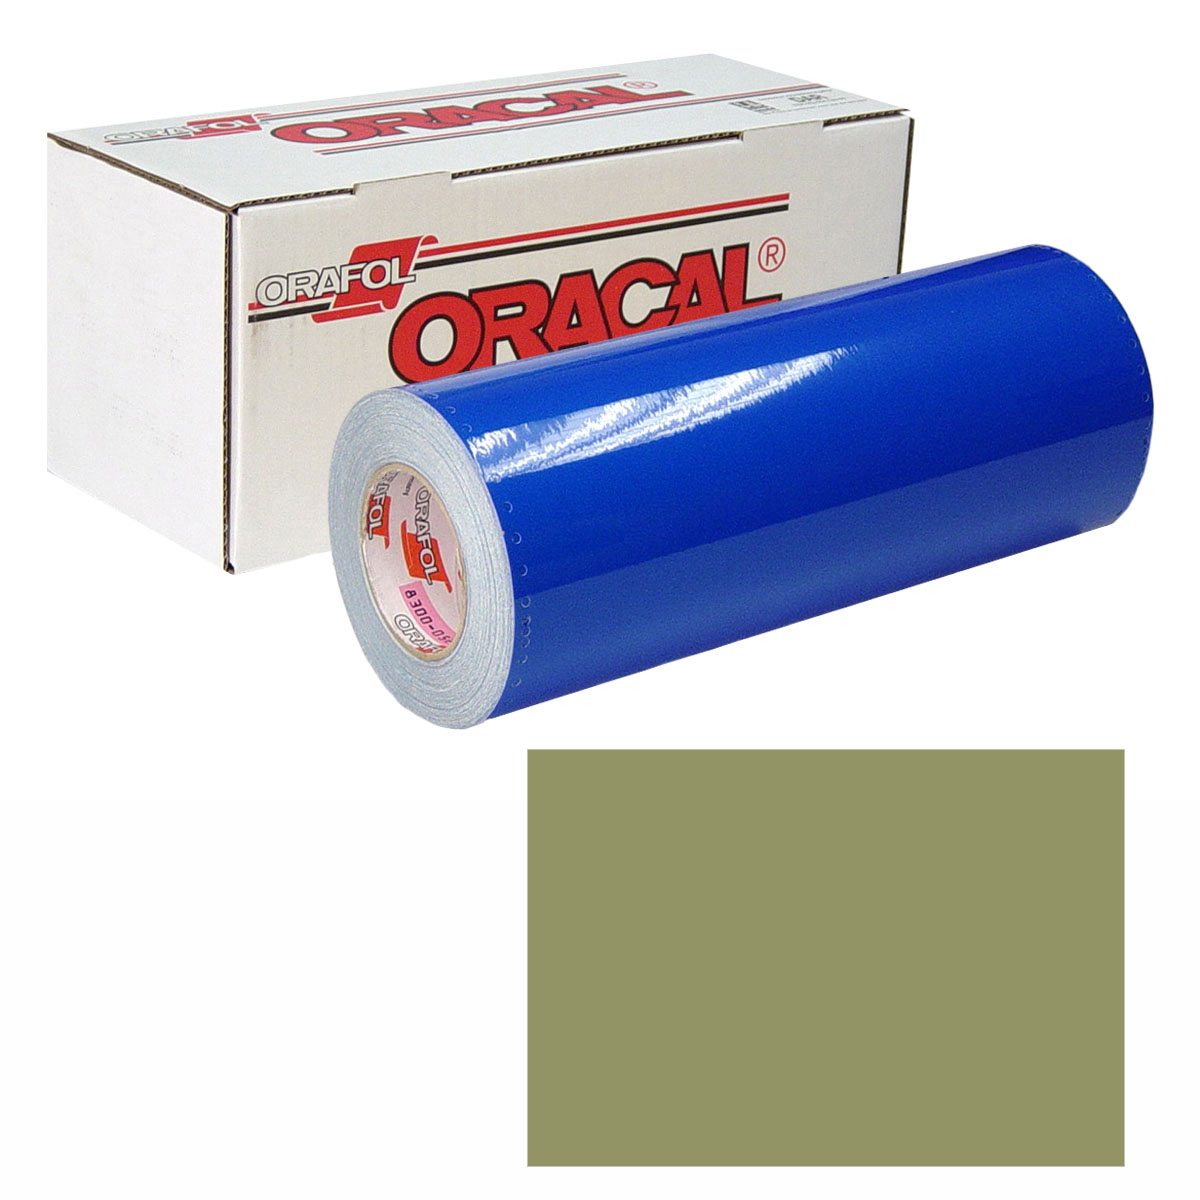 ORACAL 631 Unp 30in X 50yd 493 Olive